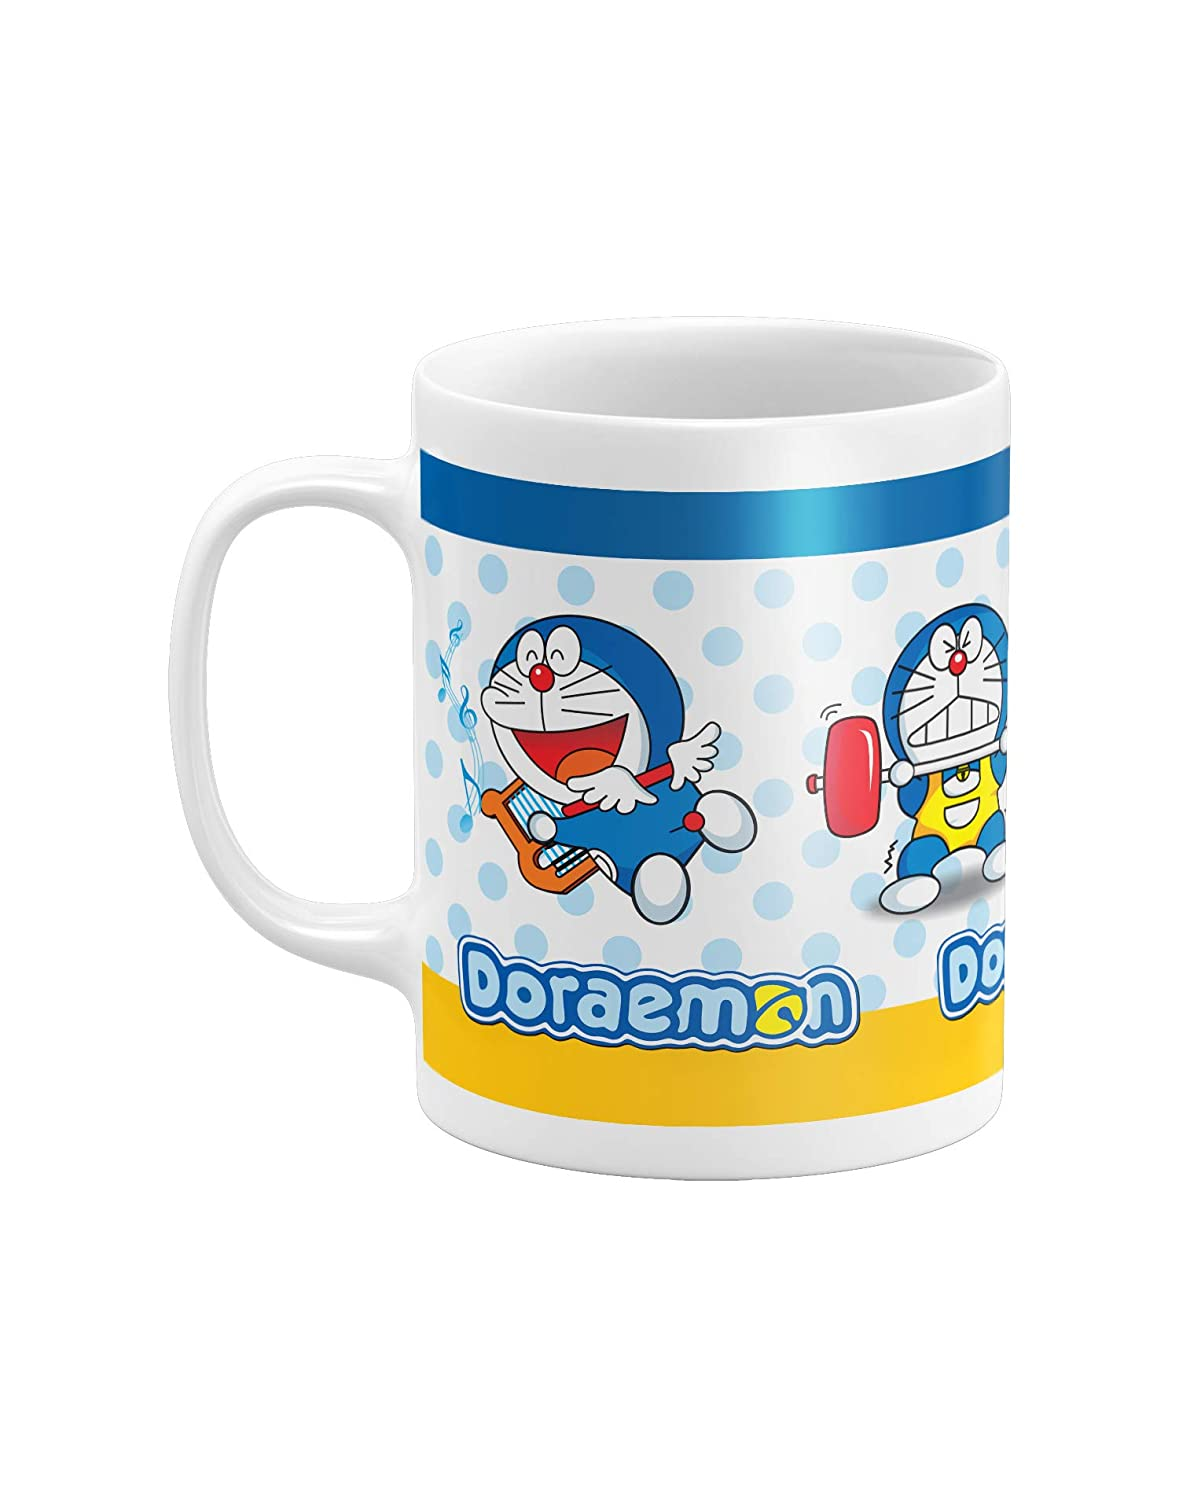 buy yoursy doraemon coffee mug online at low prices in